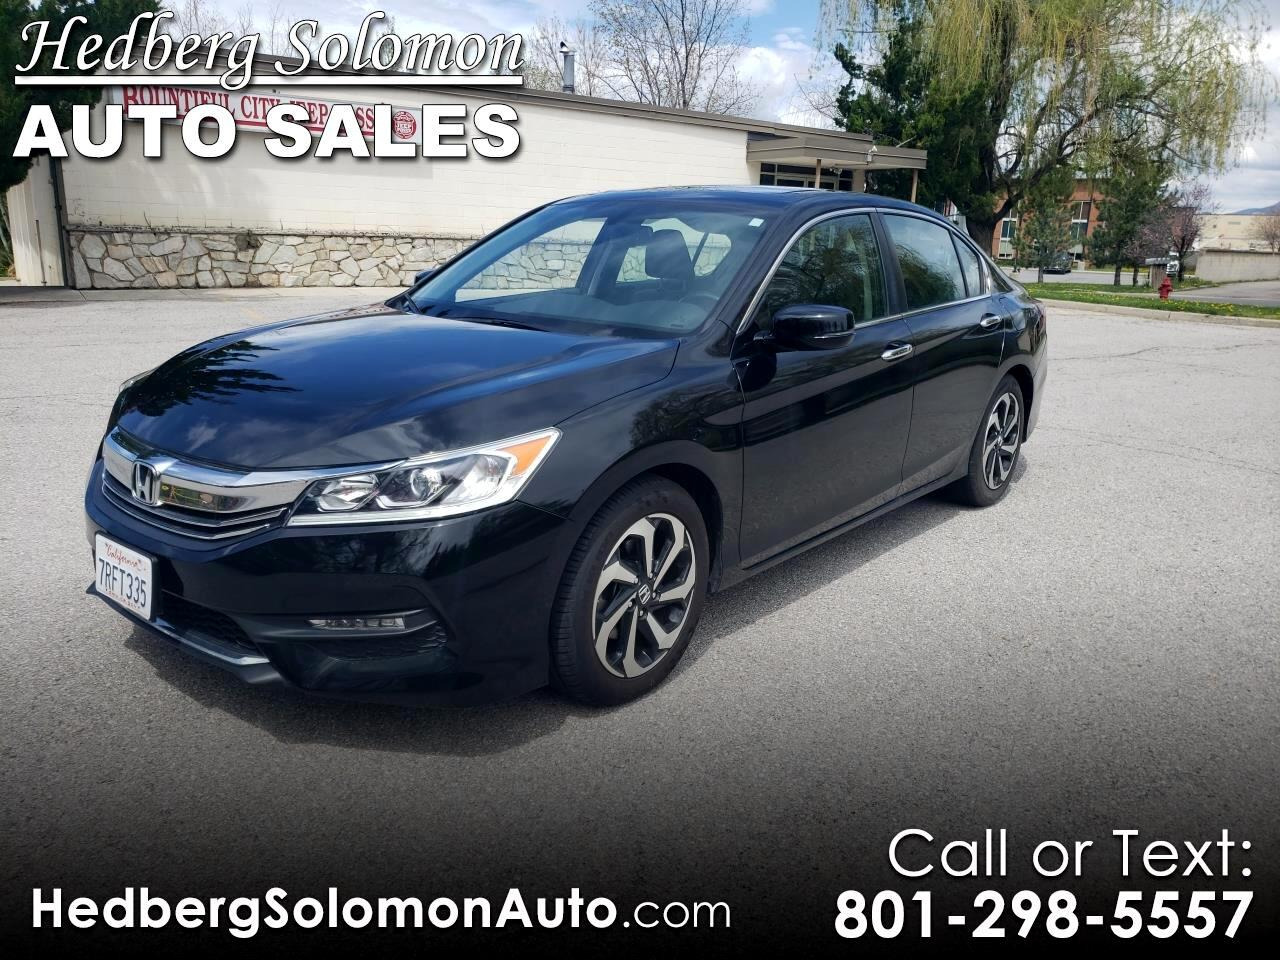 2016 Honda Accord Sedan EX-L CVT